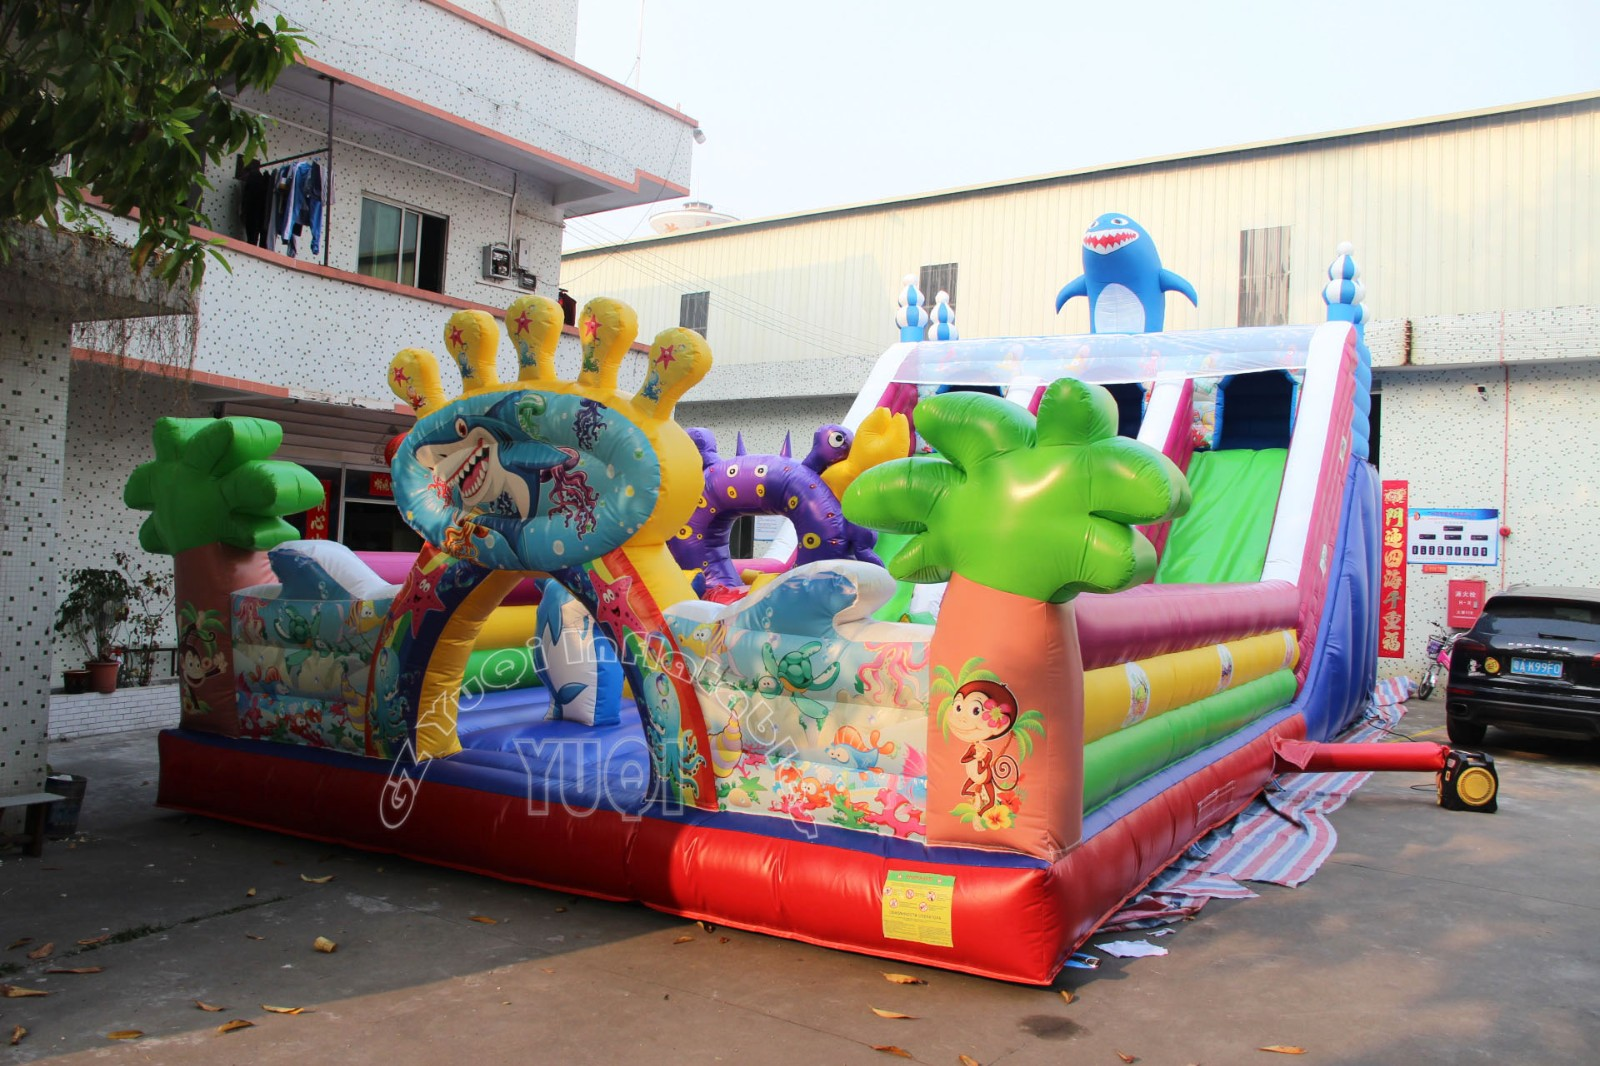 YUQI-Best Yq3 Pvc Material High Quality Giant Shark Inflatable Play Park